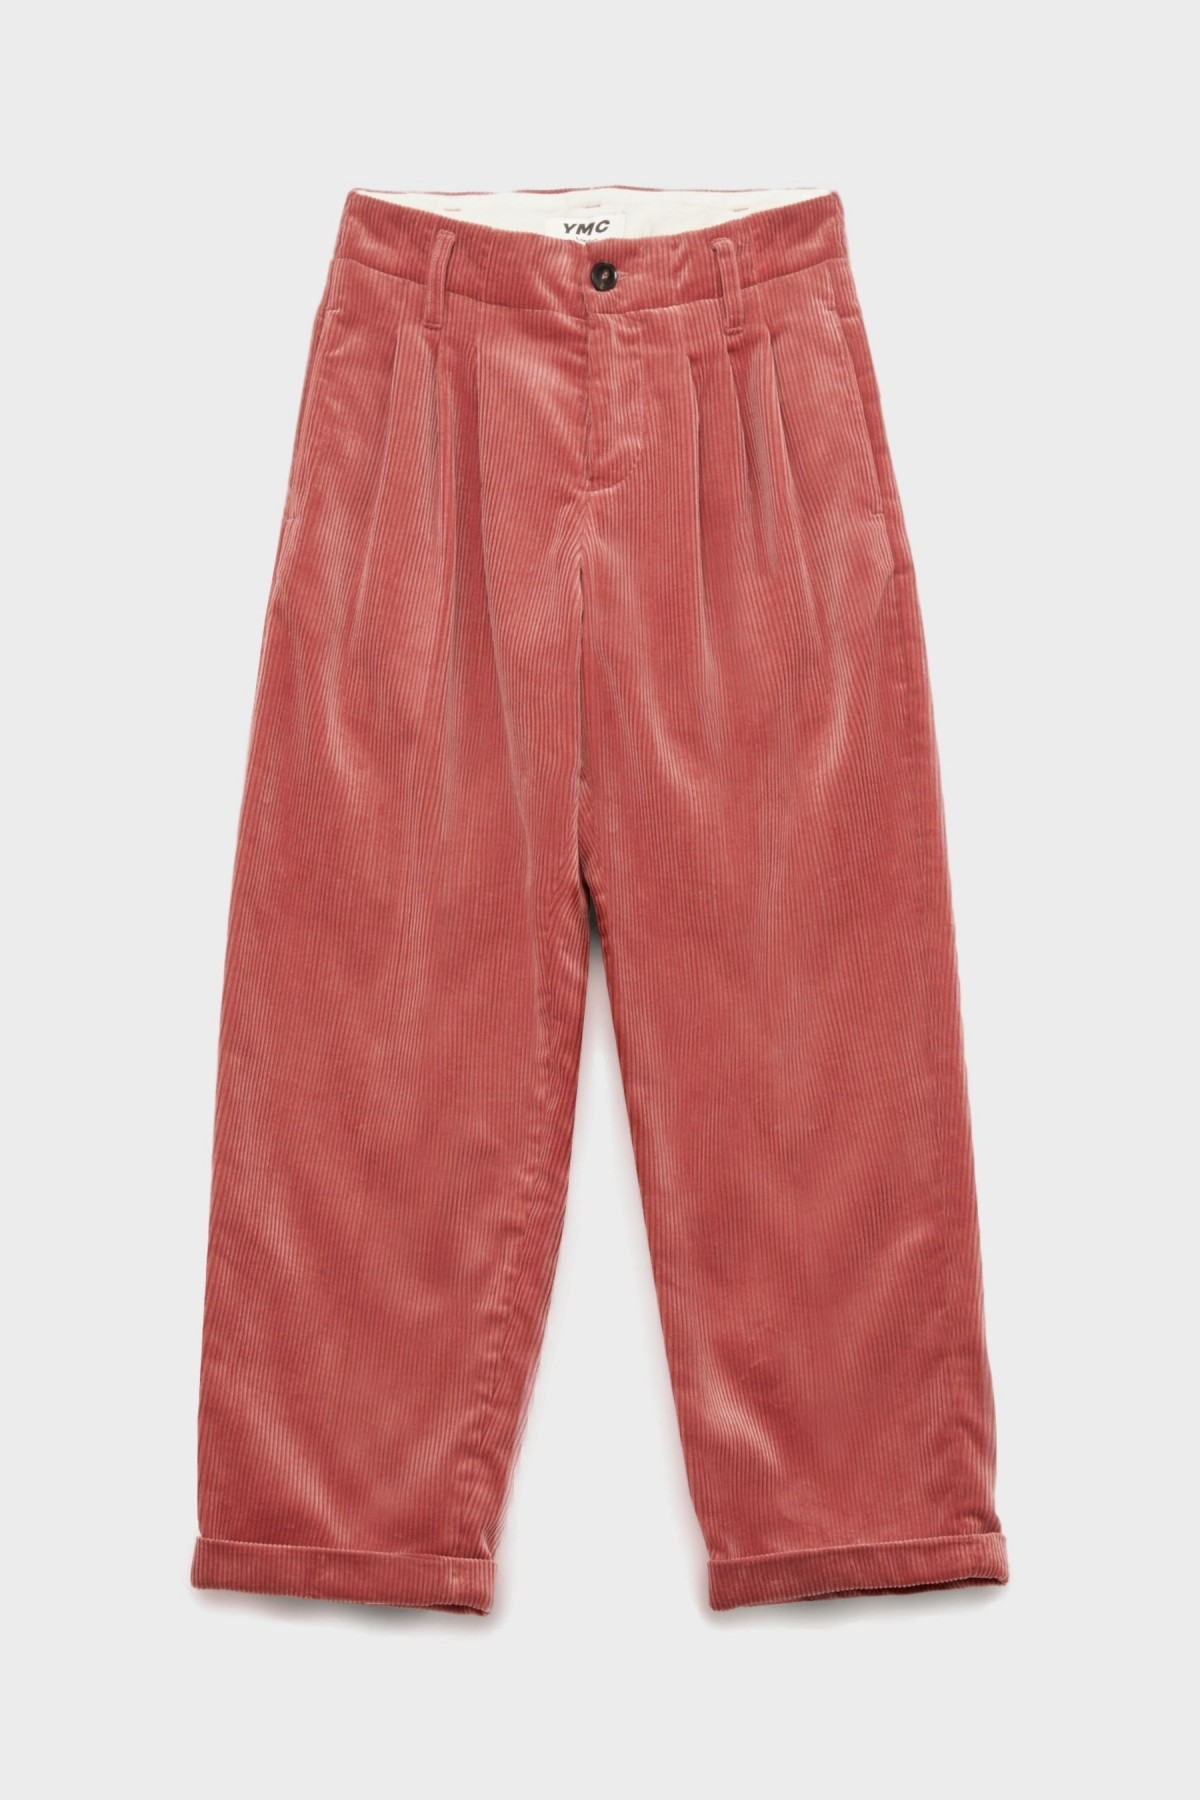 YMC You Must Create Keaton Trousers  in Pink